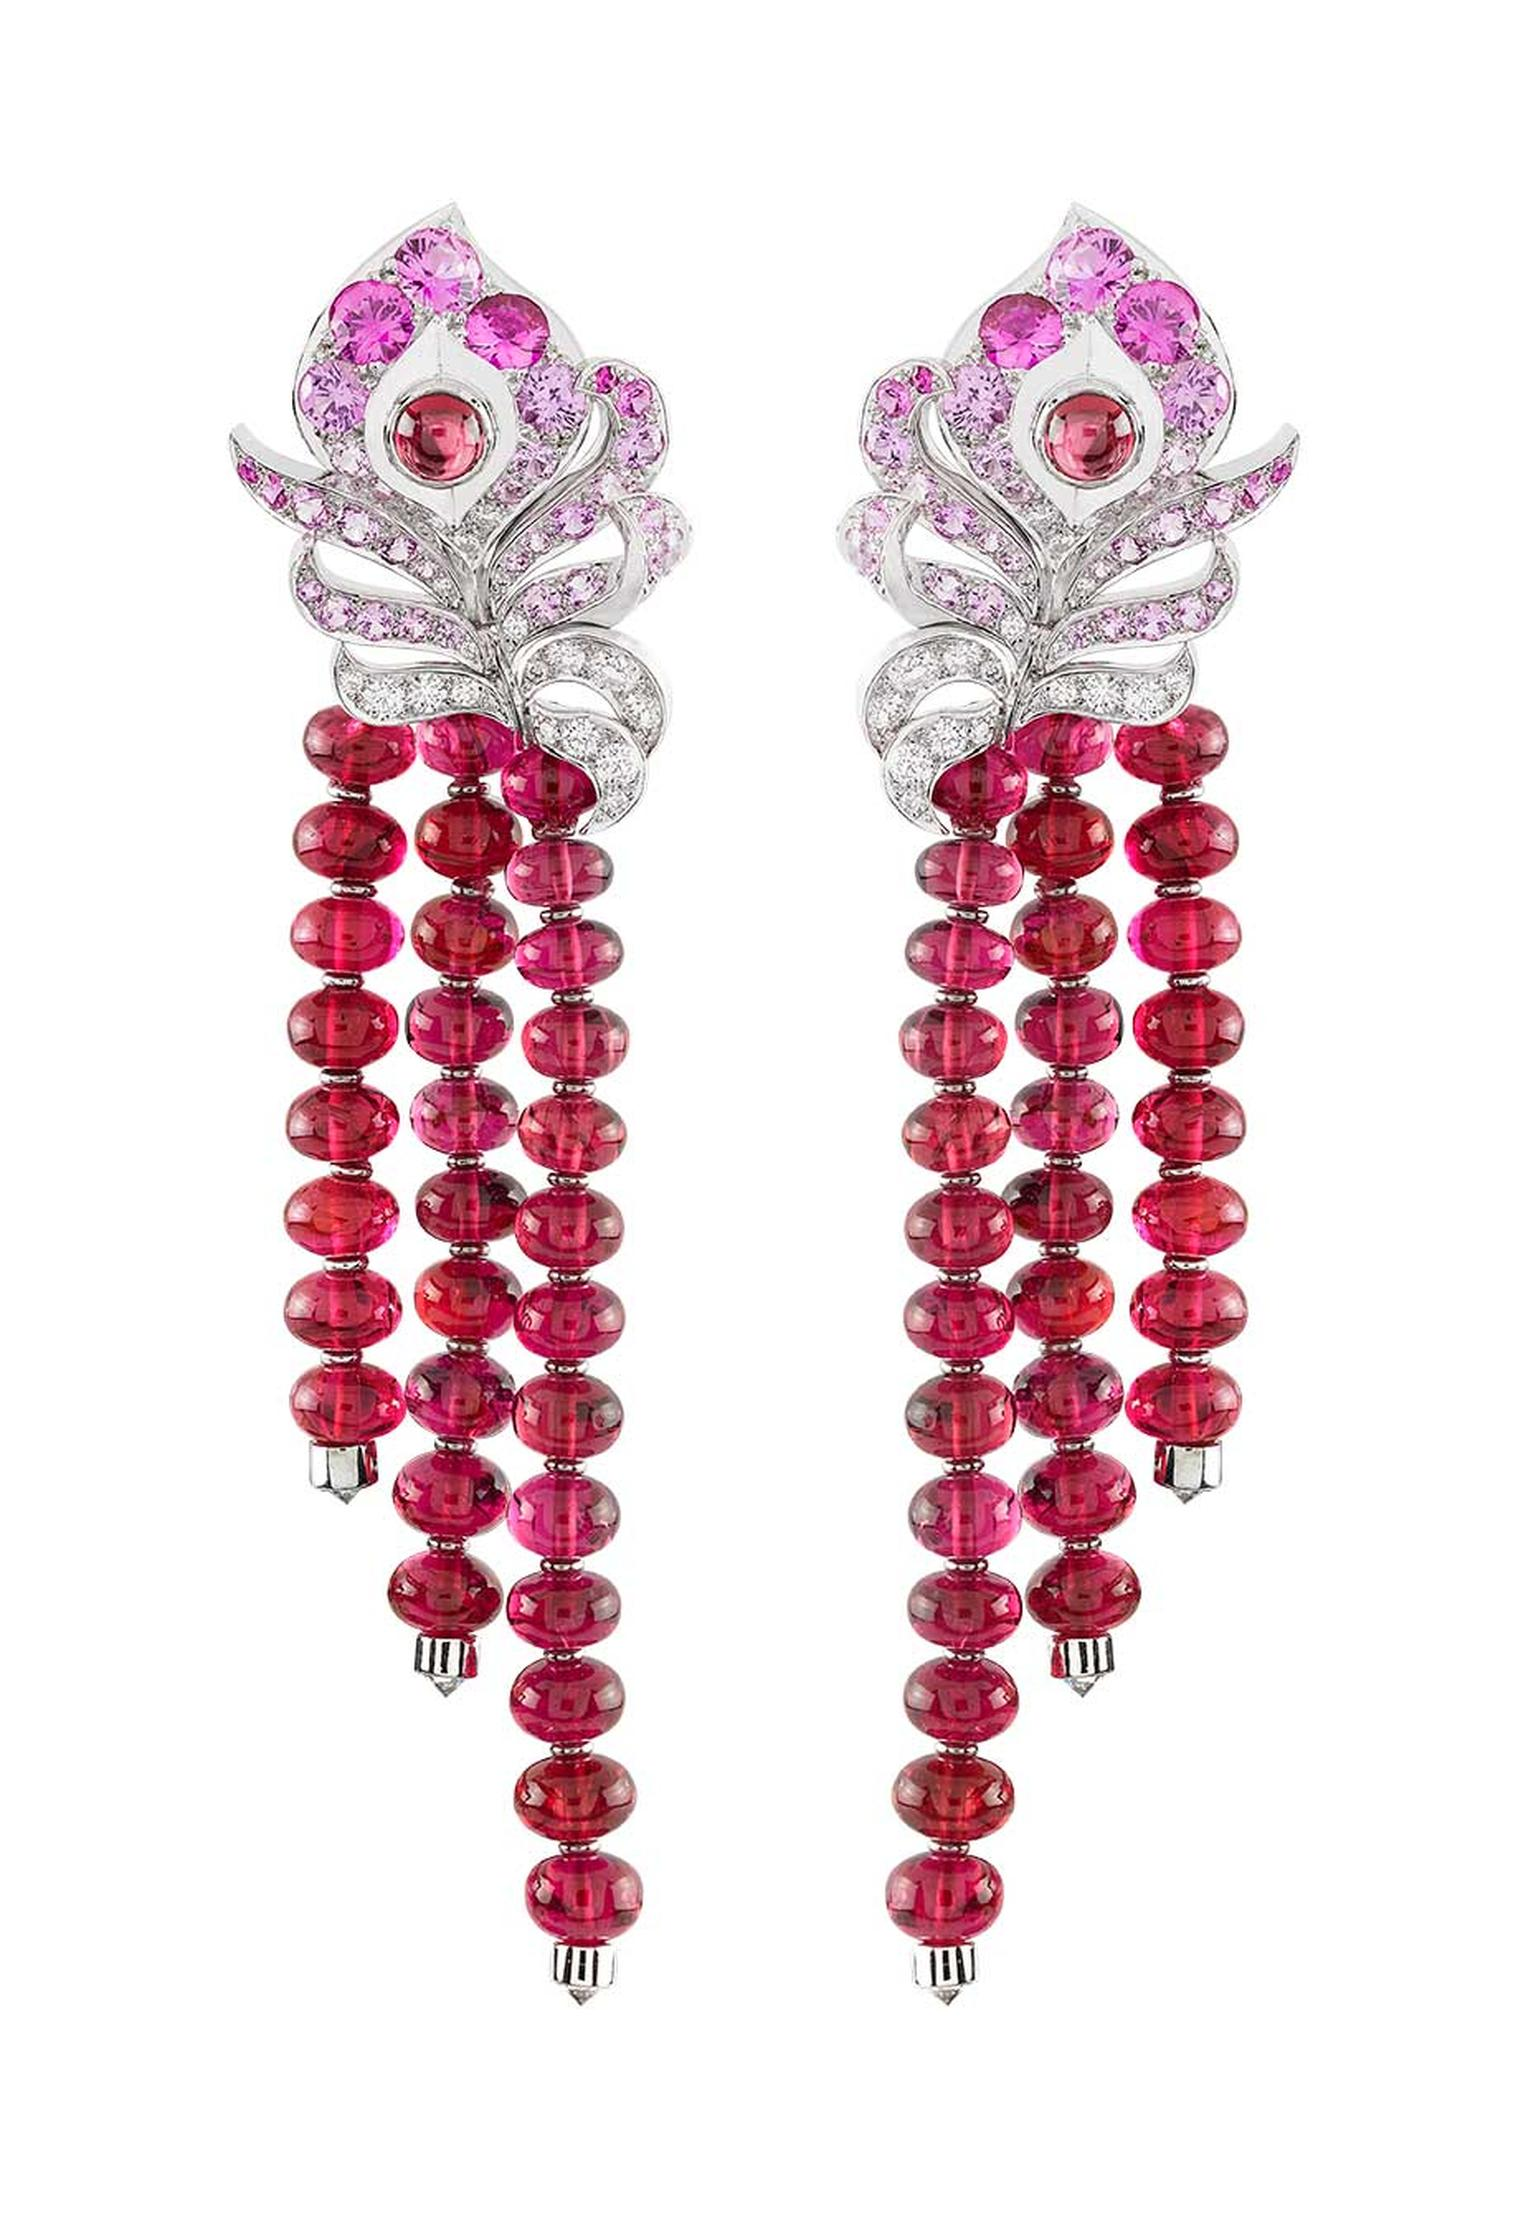 Worn by Emmy Rossum to the 2014 Met Ball, the Van Cleef & Arpels Oiseaux Flamboyant earrings from the 'Birds of Paradise' collection featuring red spinels, pink sapphires and diamonds